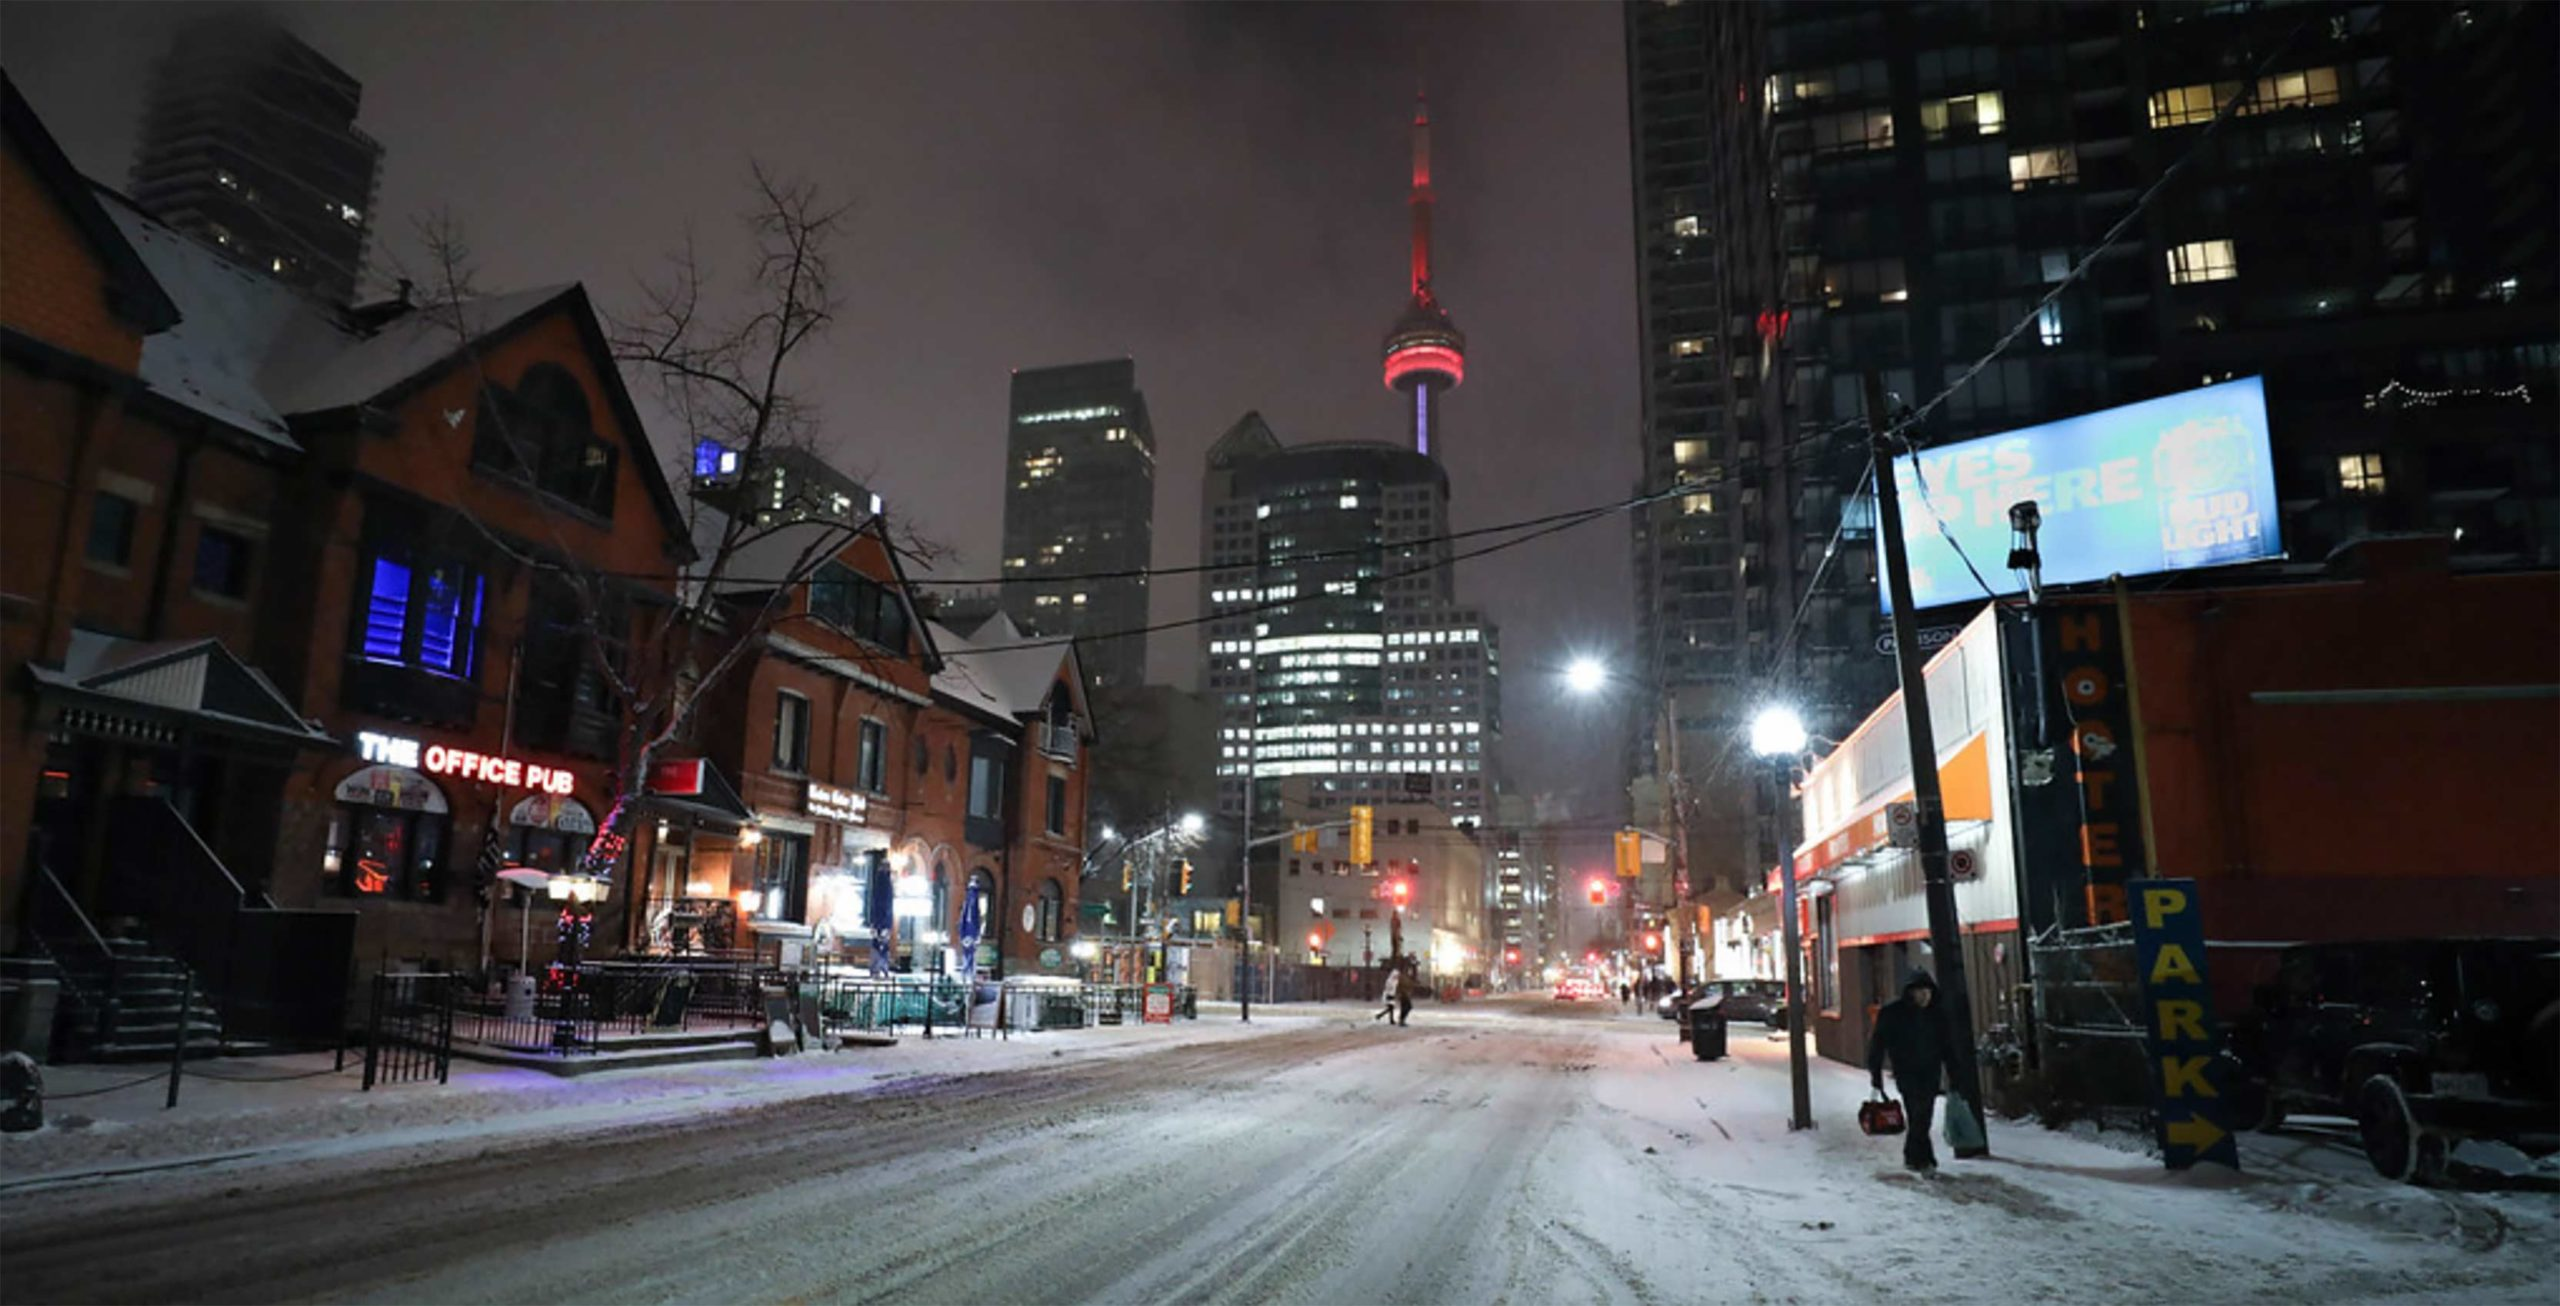 Toronto in the winter